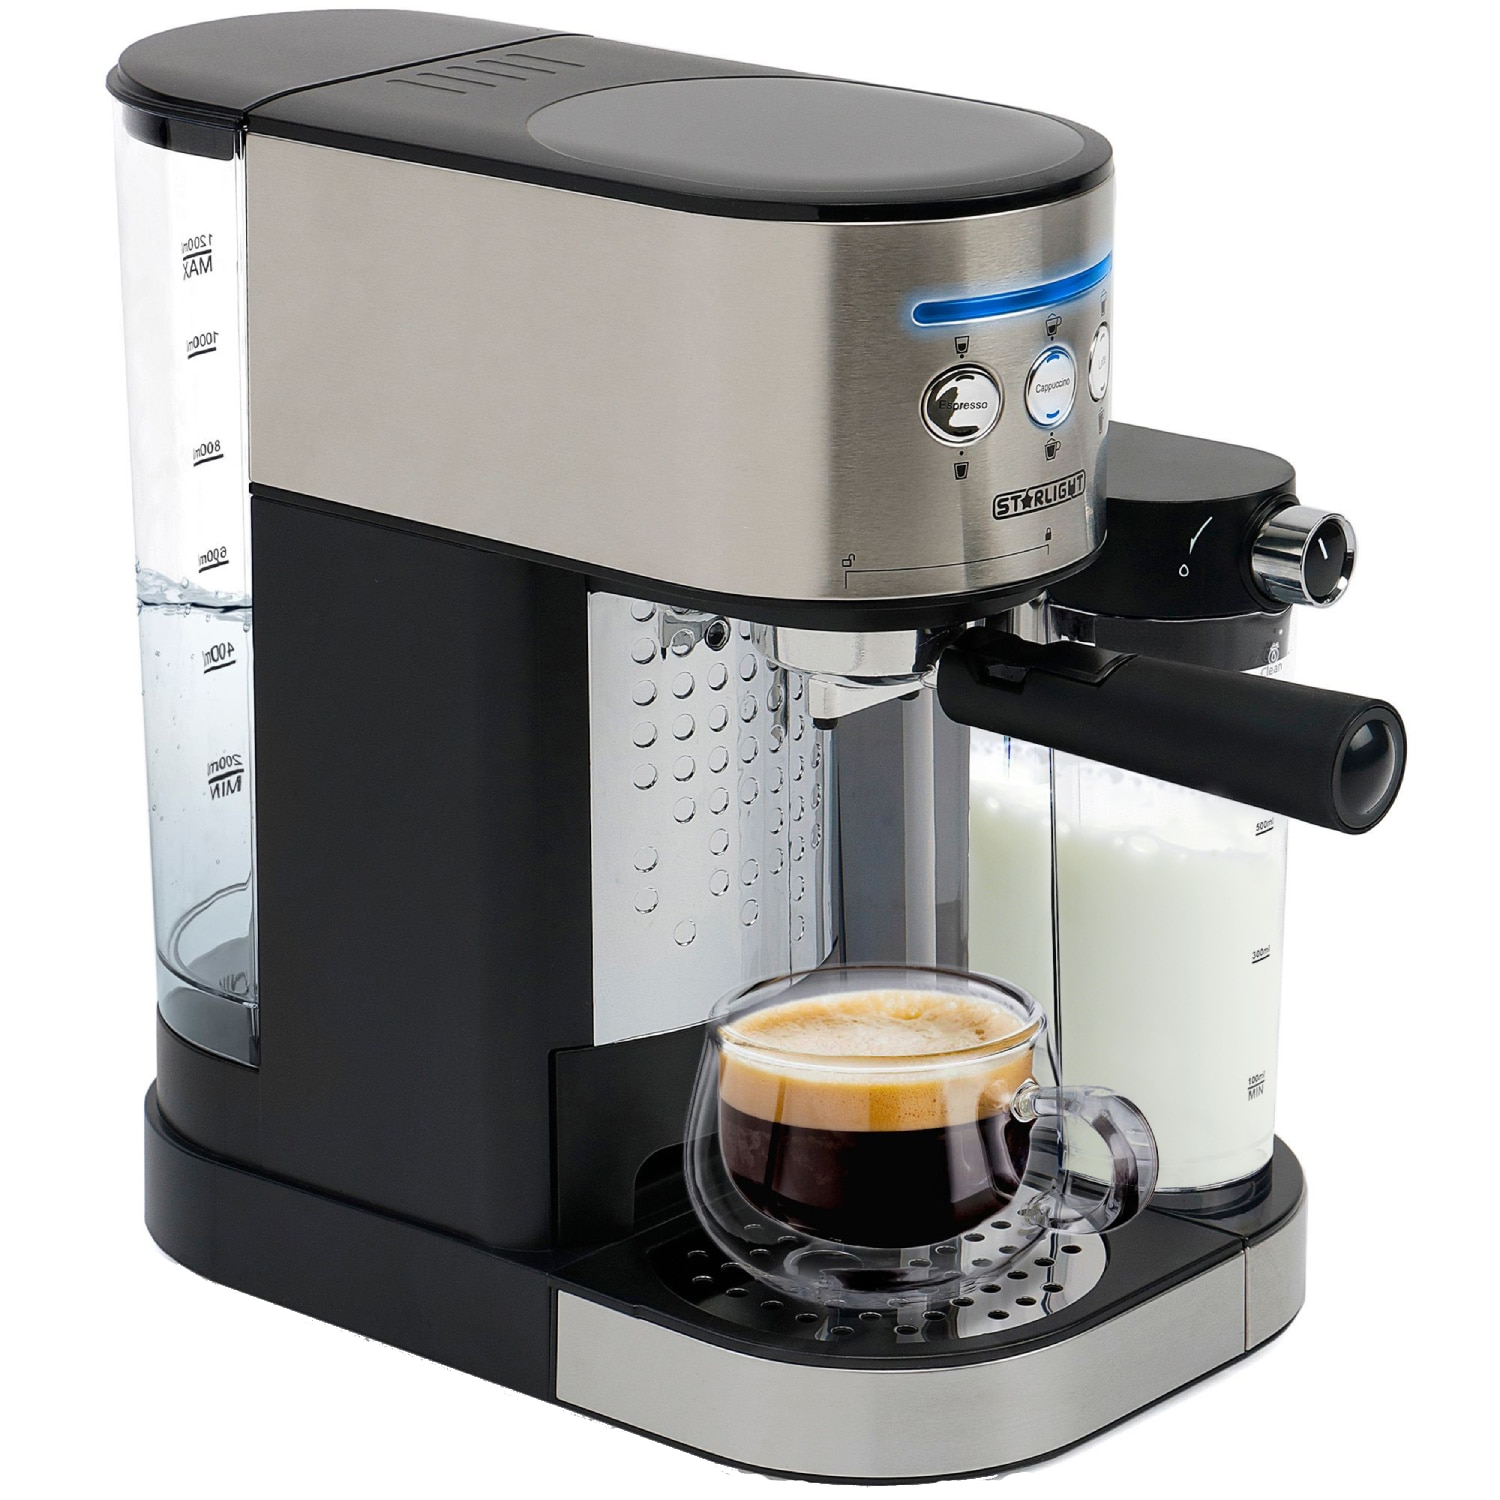 Fotografie Espressor manual Star-Light ESD-170SS, 15 Bar, 1.7 l, Dispozitiv spumare, Recipient detasabil lapte 0,5 l, Inox